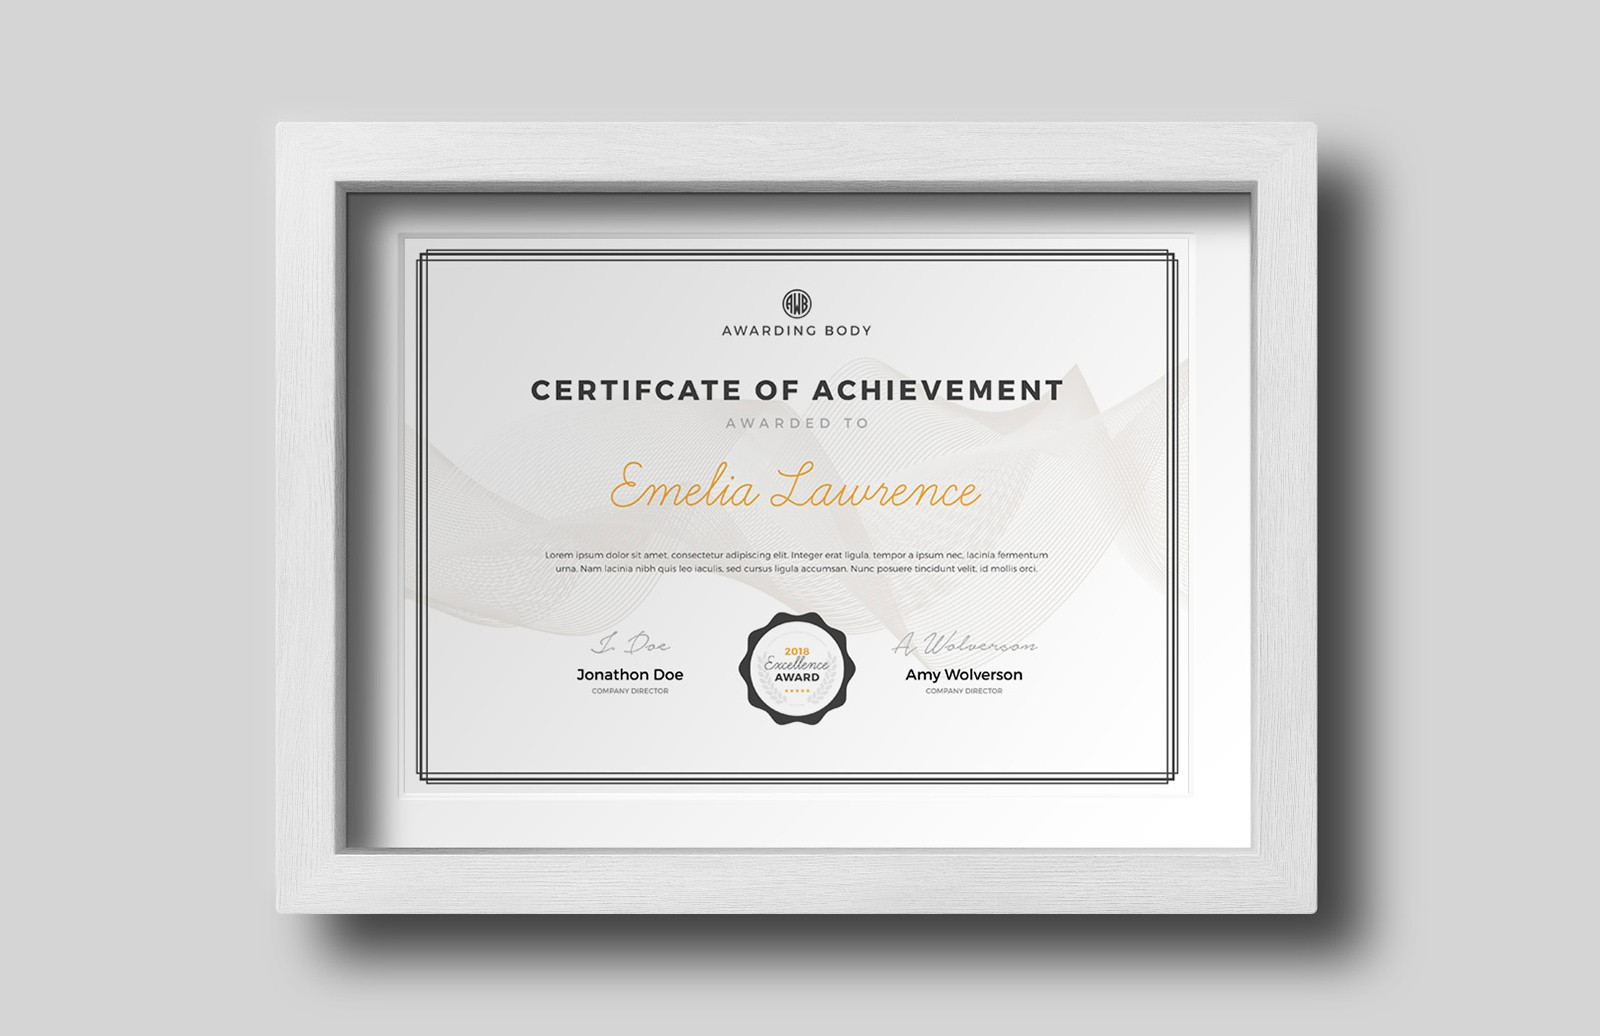 Award Certificate Template For Photoshop Medialoot